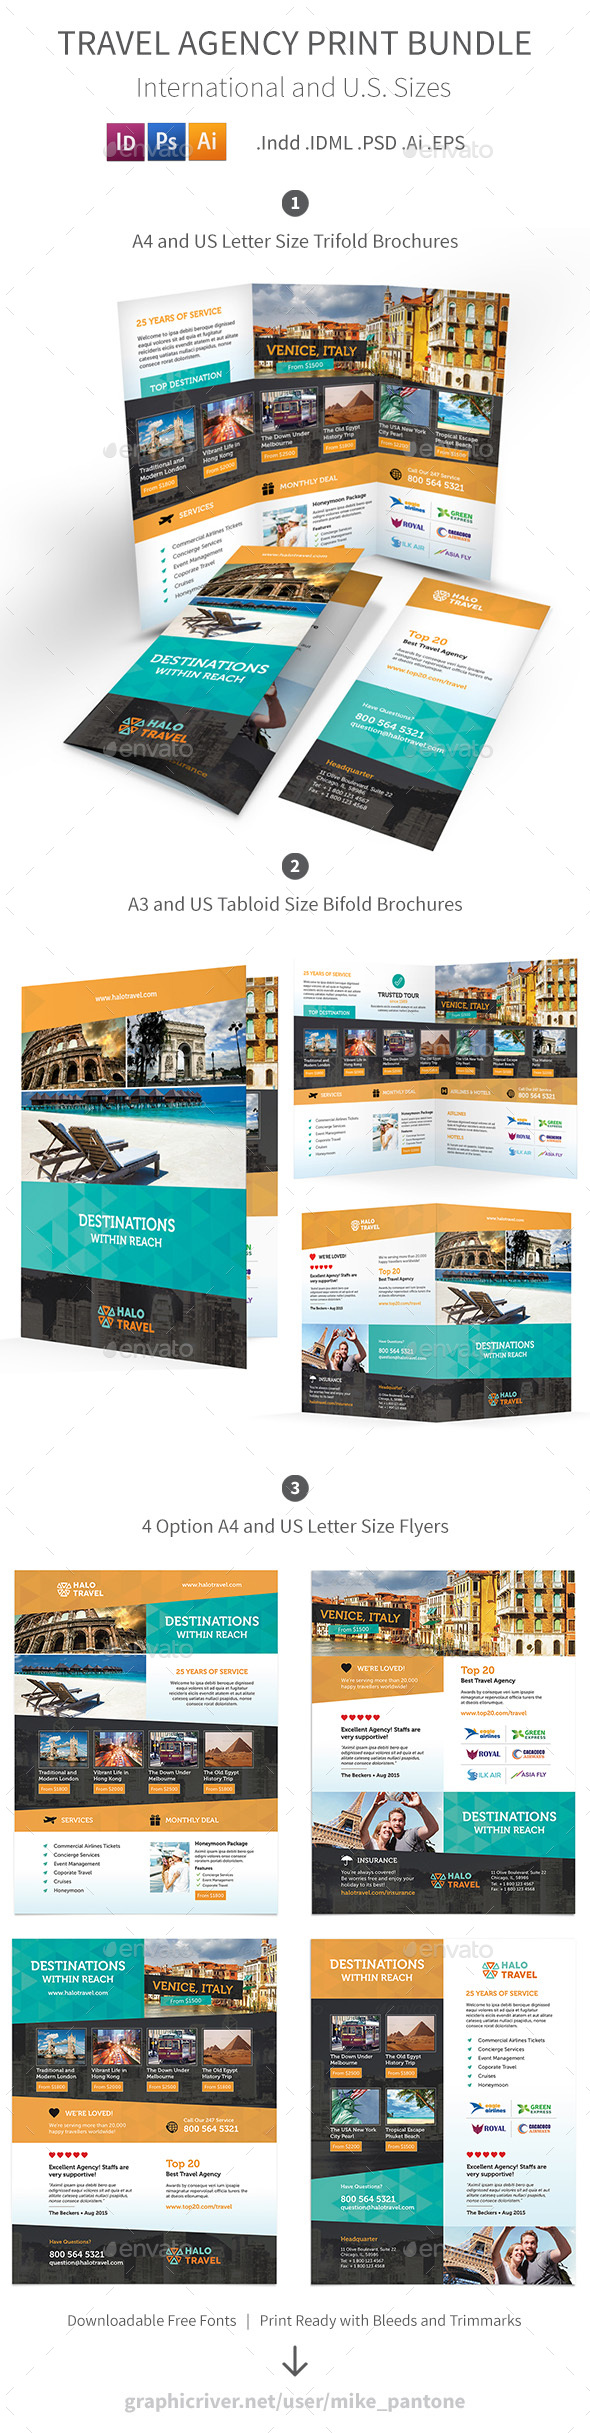 Travel Agency Print Bundle 2 - Informational Brochures